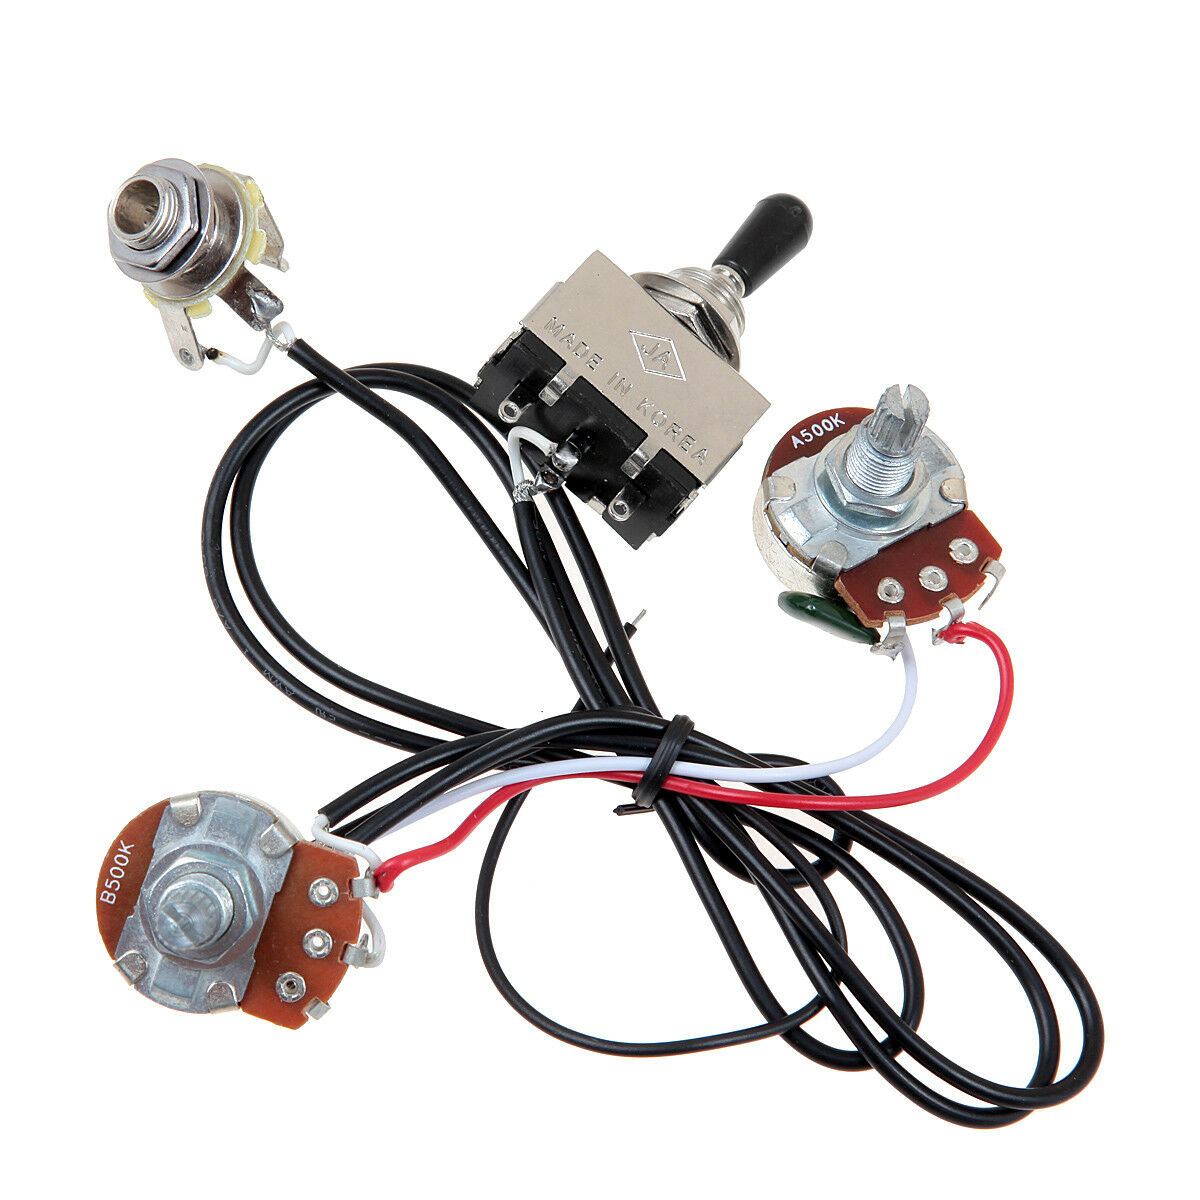 Volume 1 Tone Pickup Wiring Diagram Electric Guitar Harness Kit 3 Way Toggle Switch 500k Pots